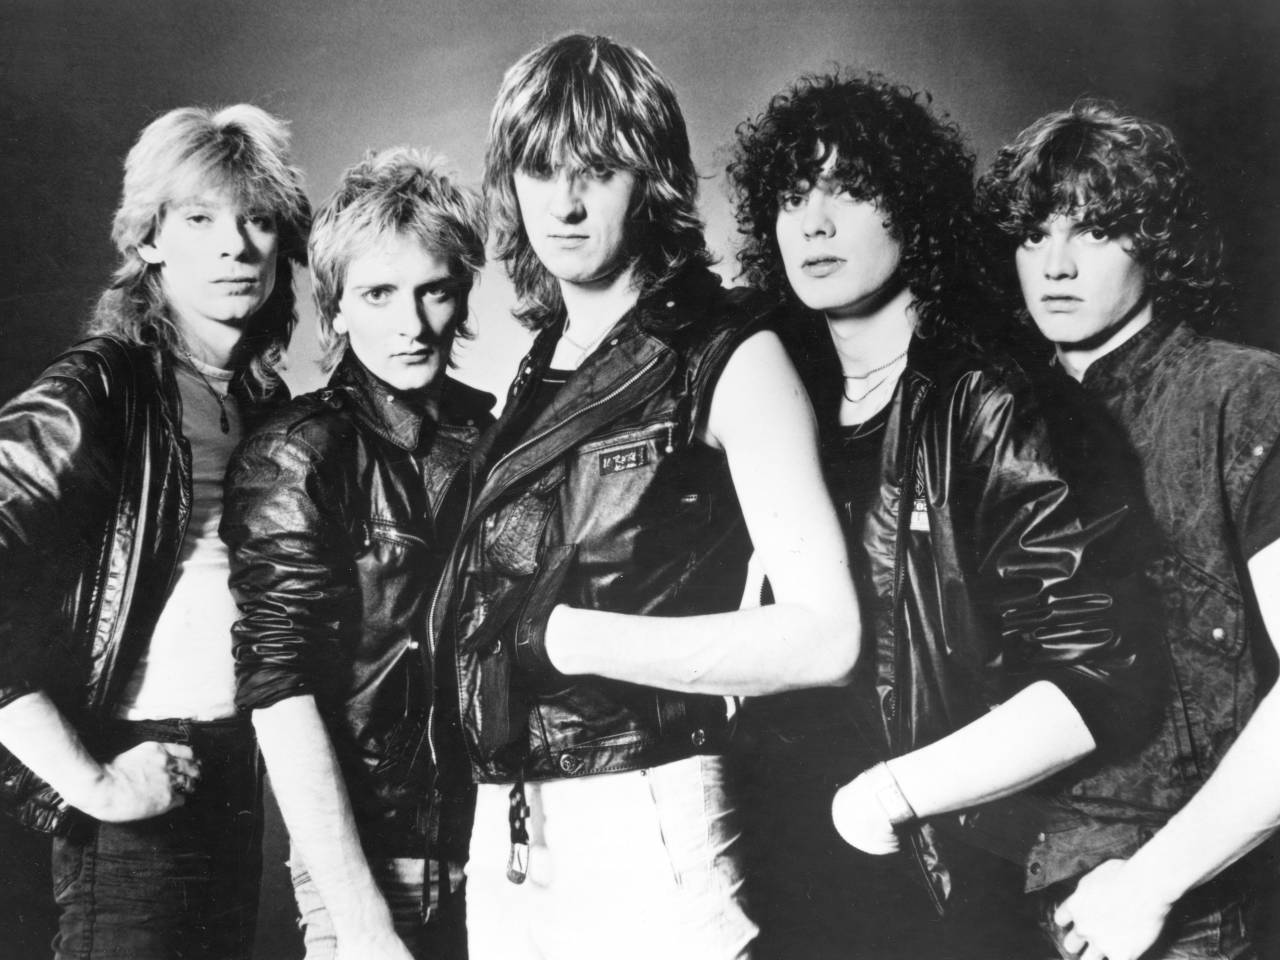 It's time for the critical reappraisal of Def Leppard, whether you like it or not